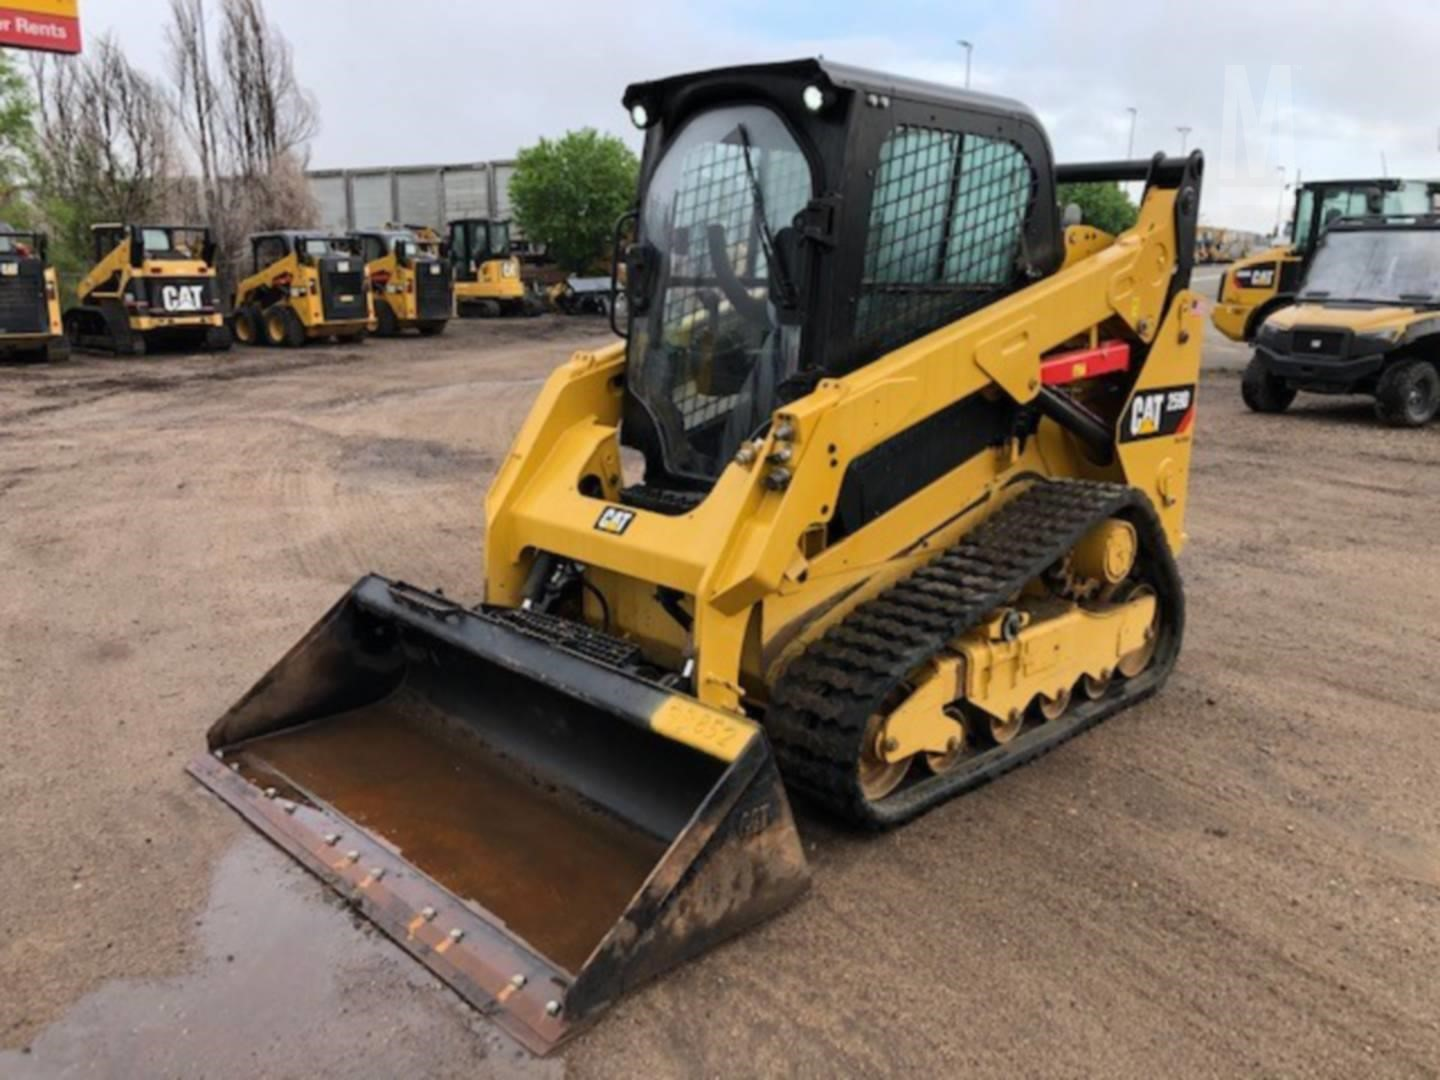 Wagner Equipment Track Skid Steers For Sale 11 Listings Marketbook Ca Page 1 Of 1